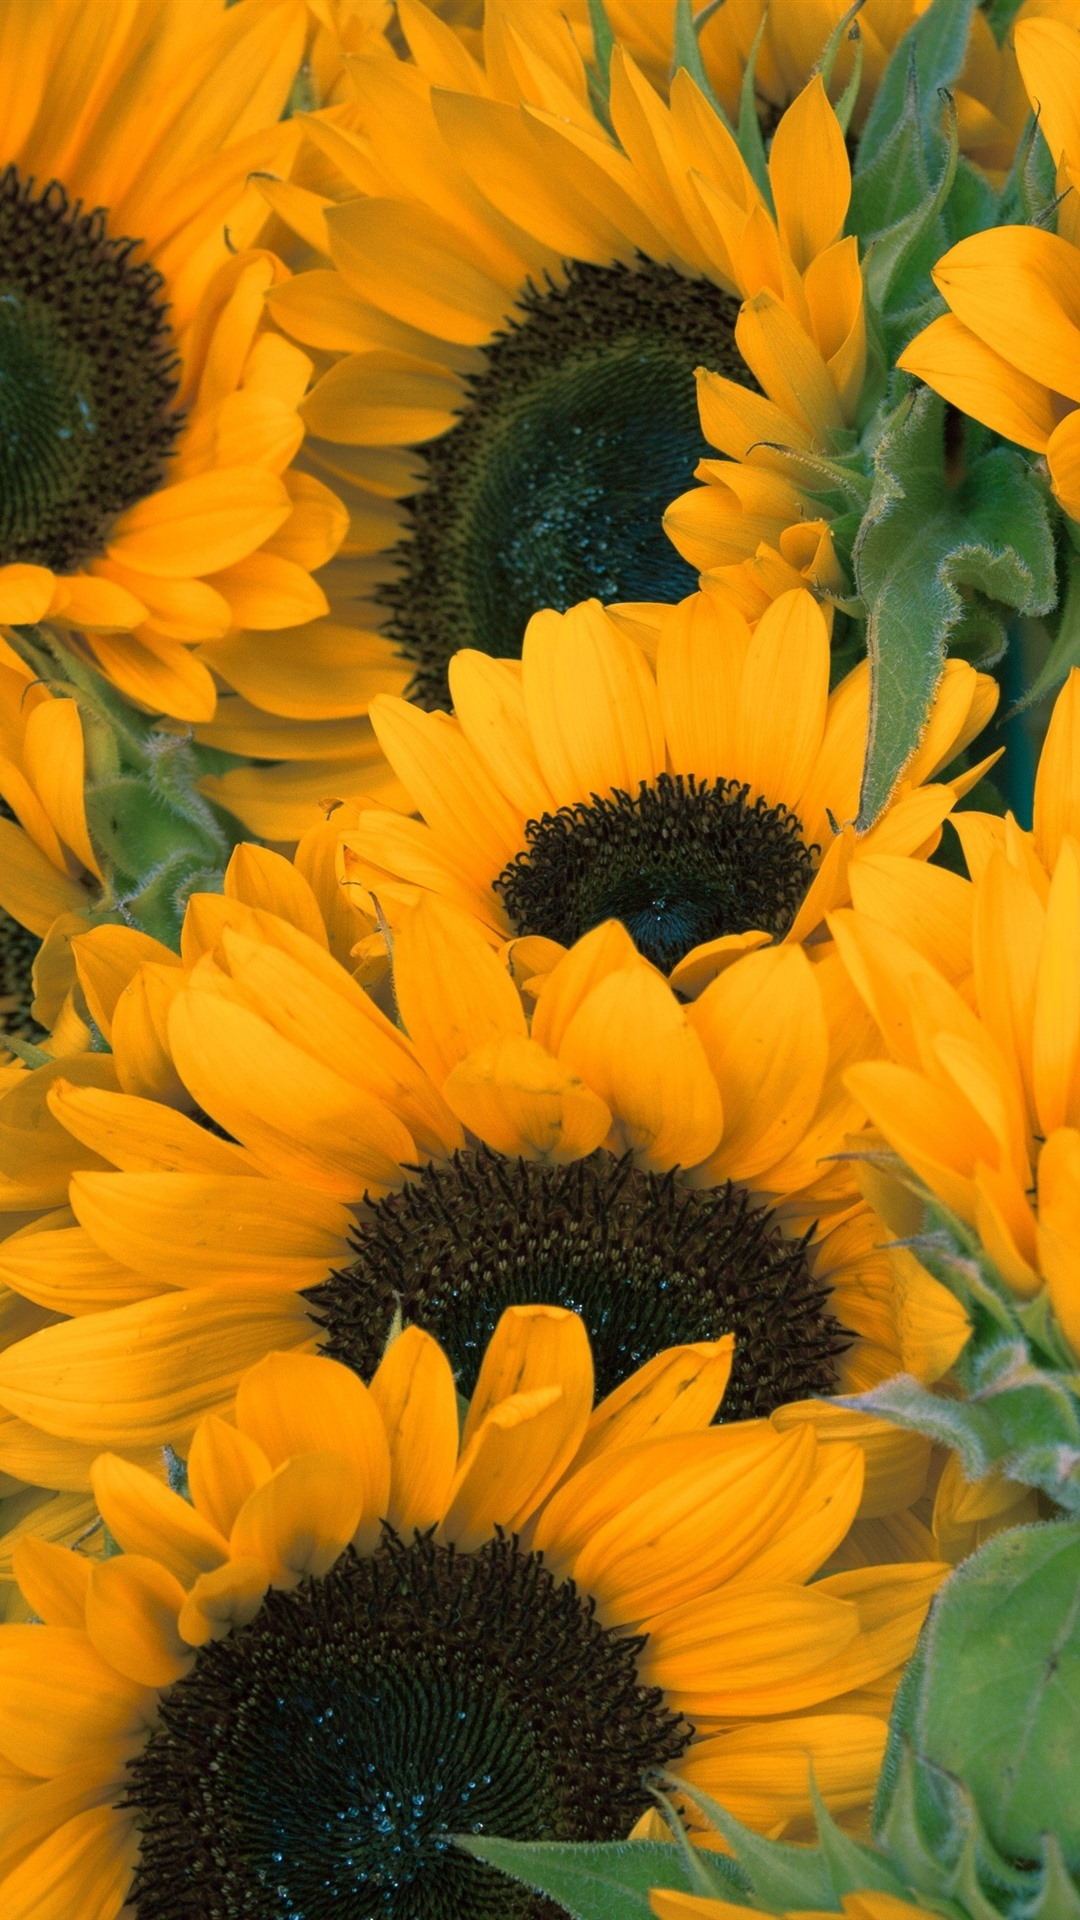 Sunflowers Yellow Flowers Summer 1125x2436 Iphone 11 Pro Xs X Wallpaper Background Picture Image